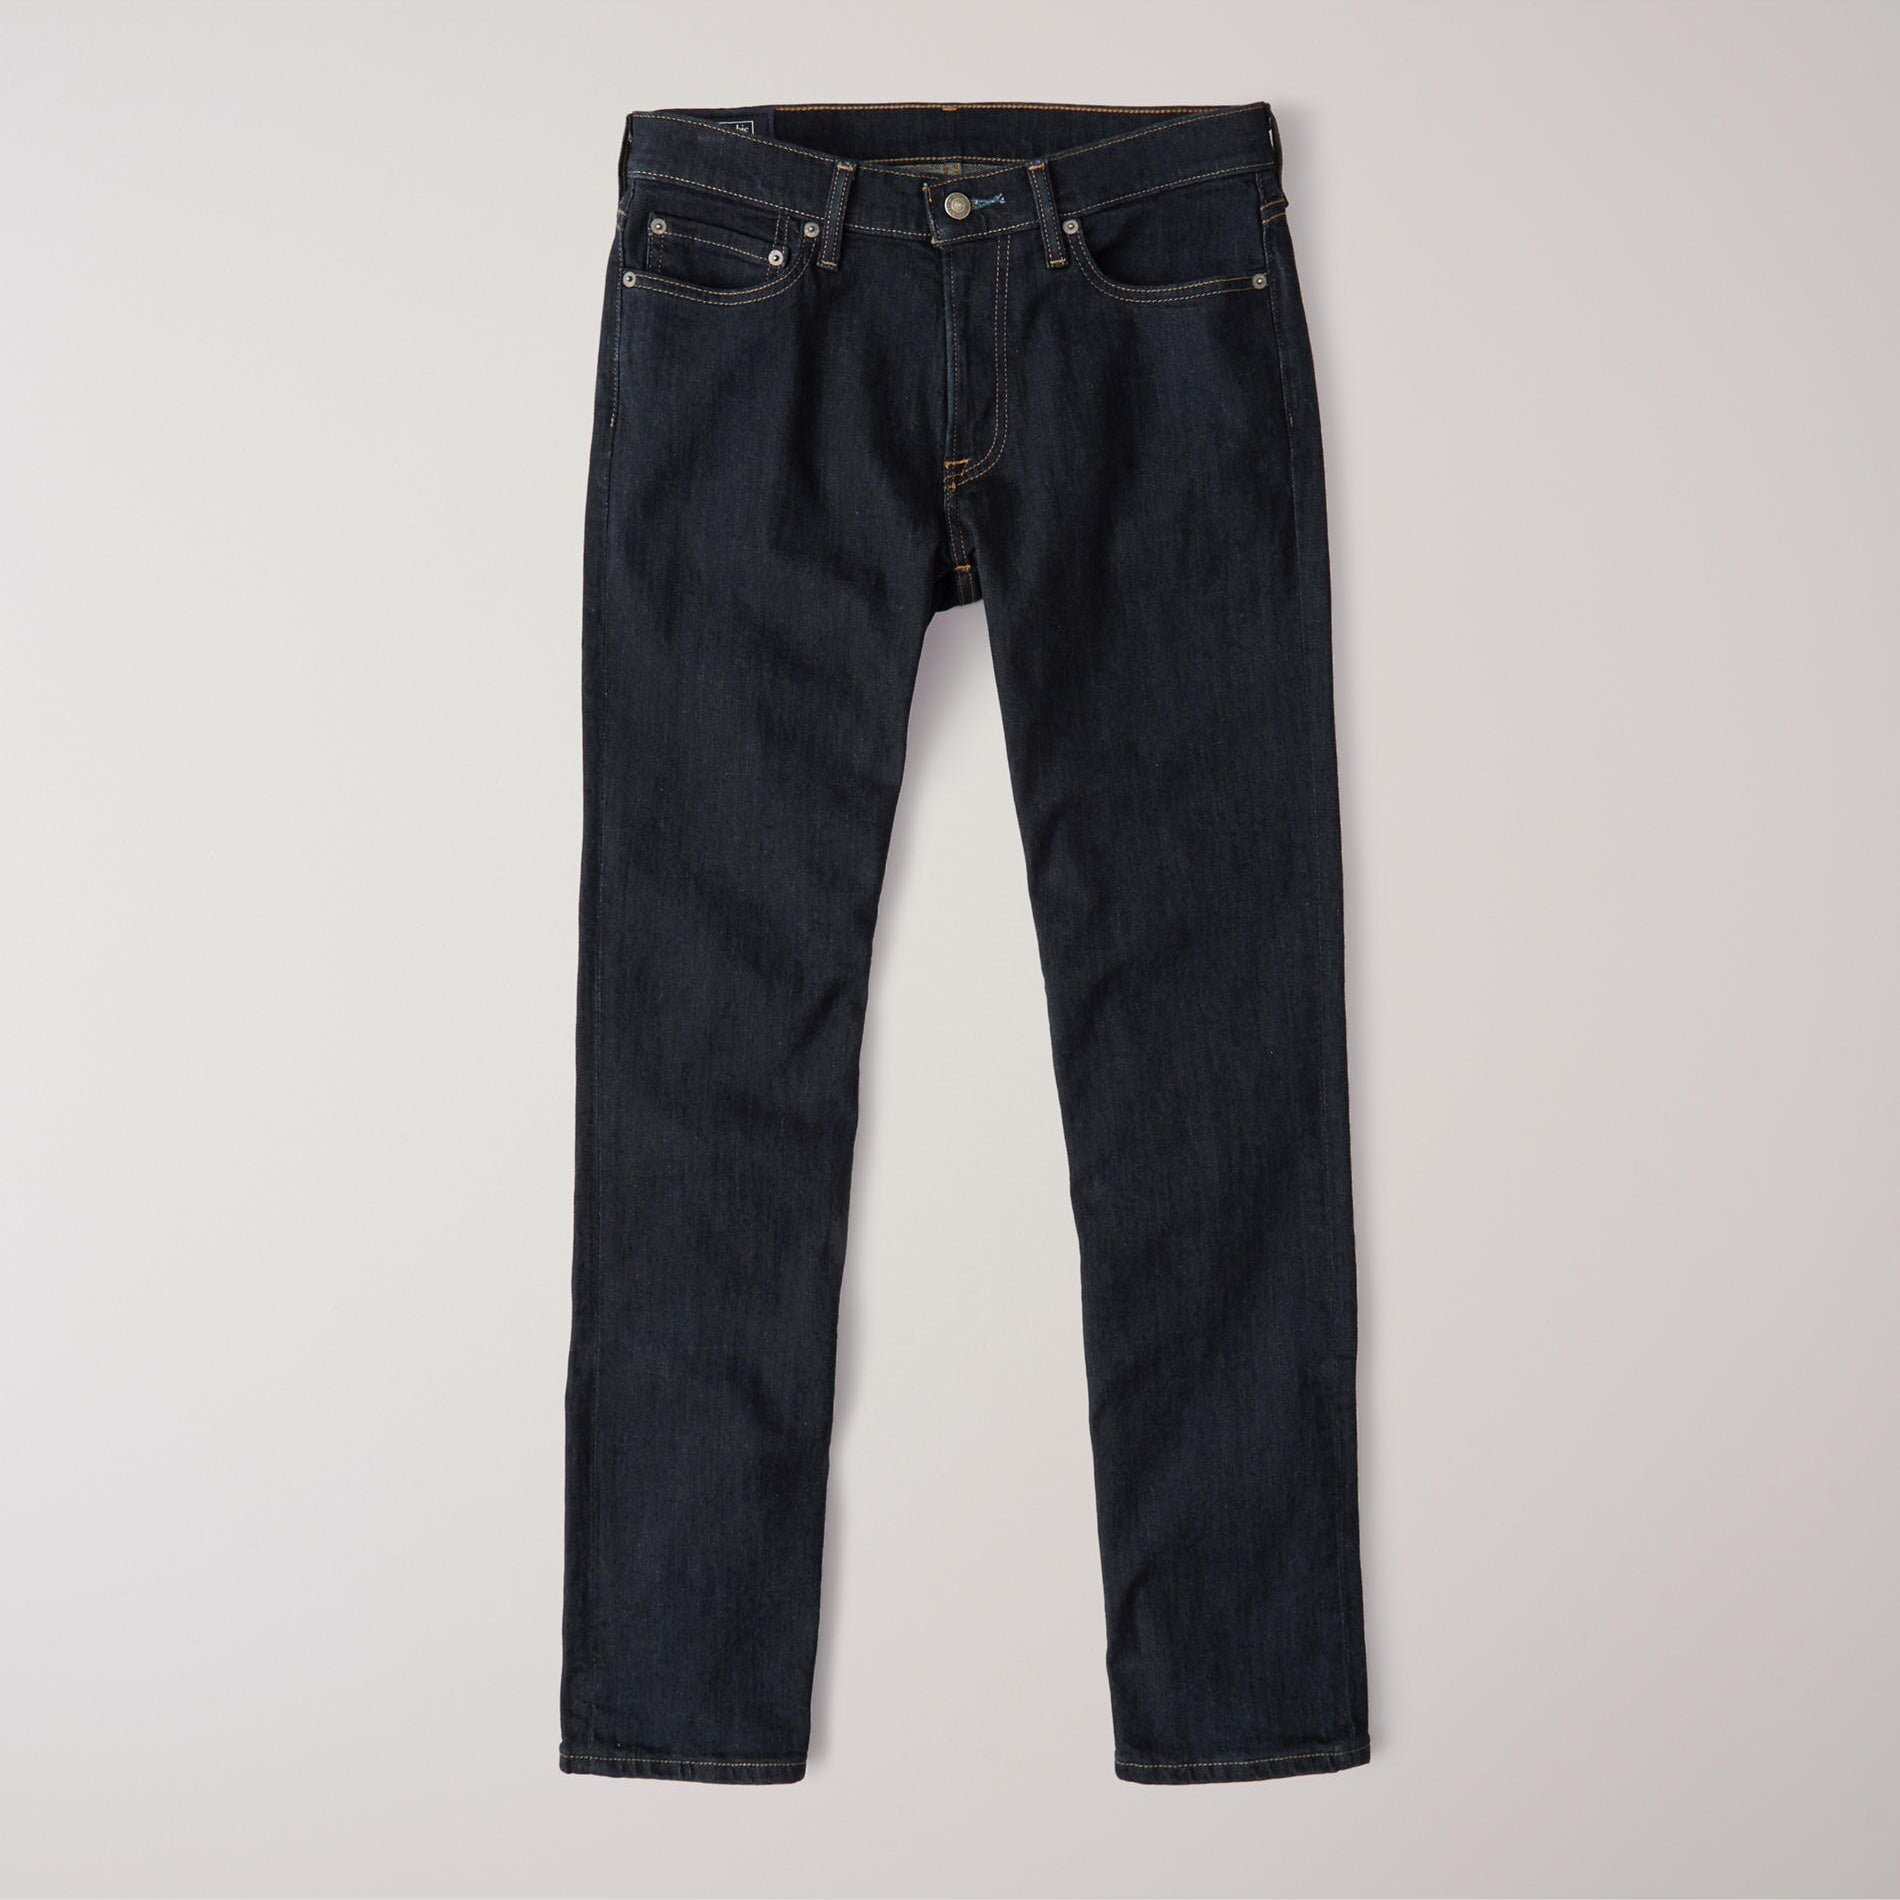 Denim Co Straight Fit Stretch Denim For Men-Dark Navy-NA8771